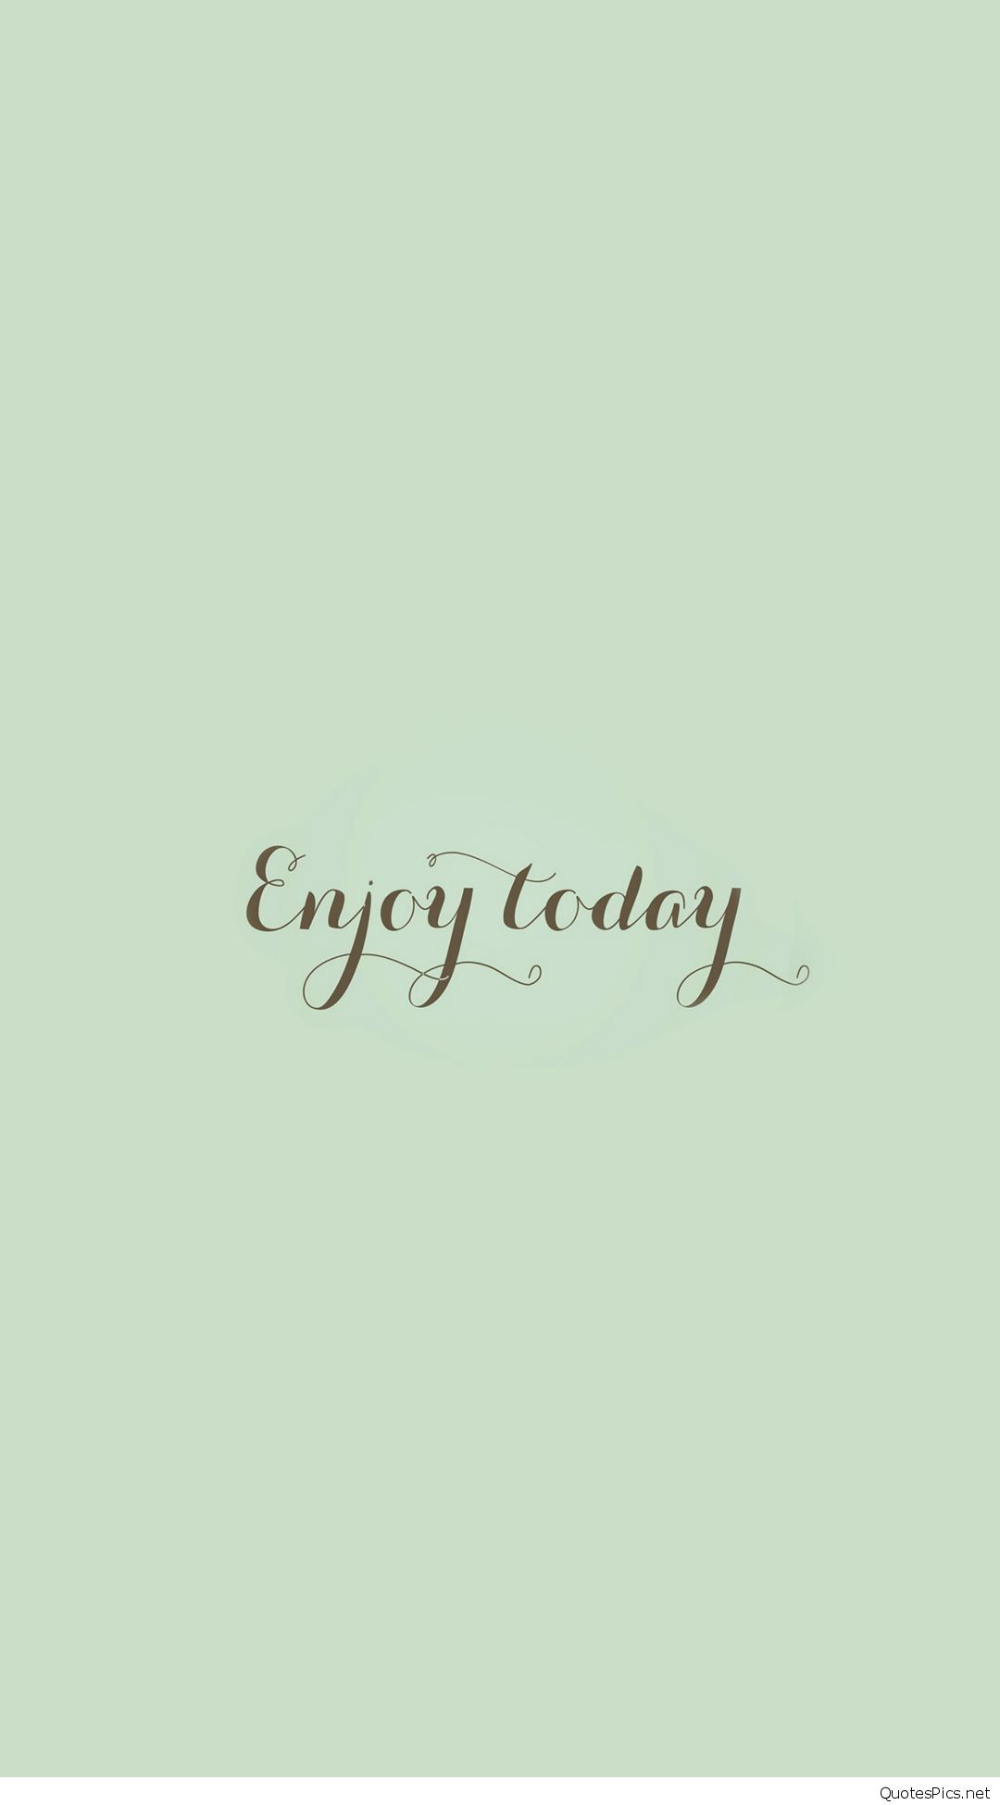 Simple Quotes Wallpapers Wallpaper Cave Cute Simple Wallpapers Wallpaper Iphone Quotes Love Quotes Photos